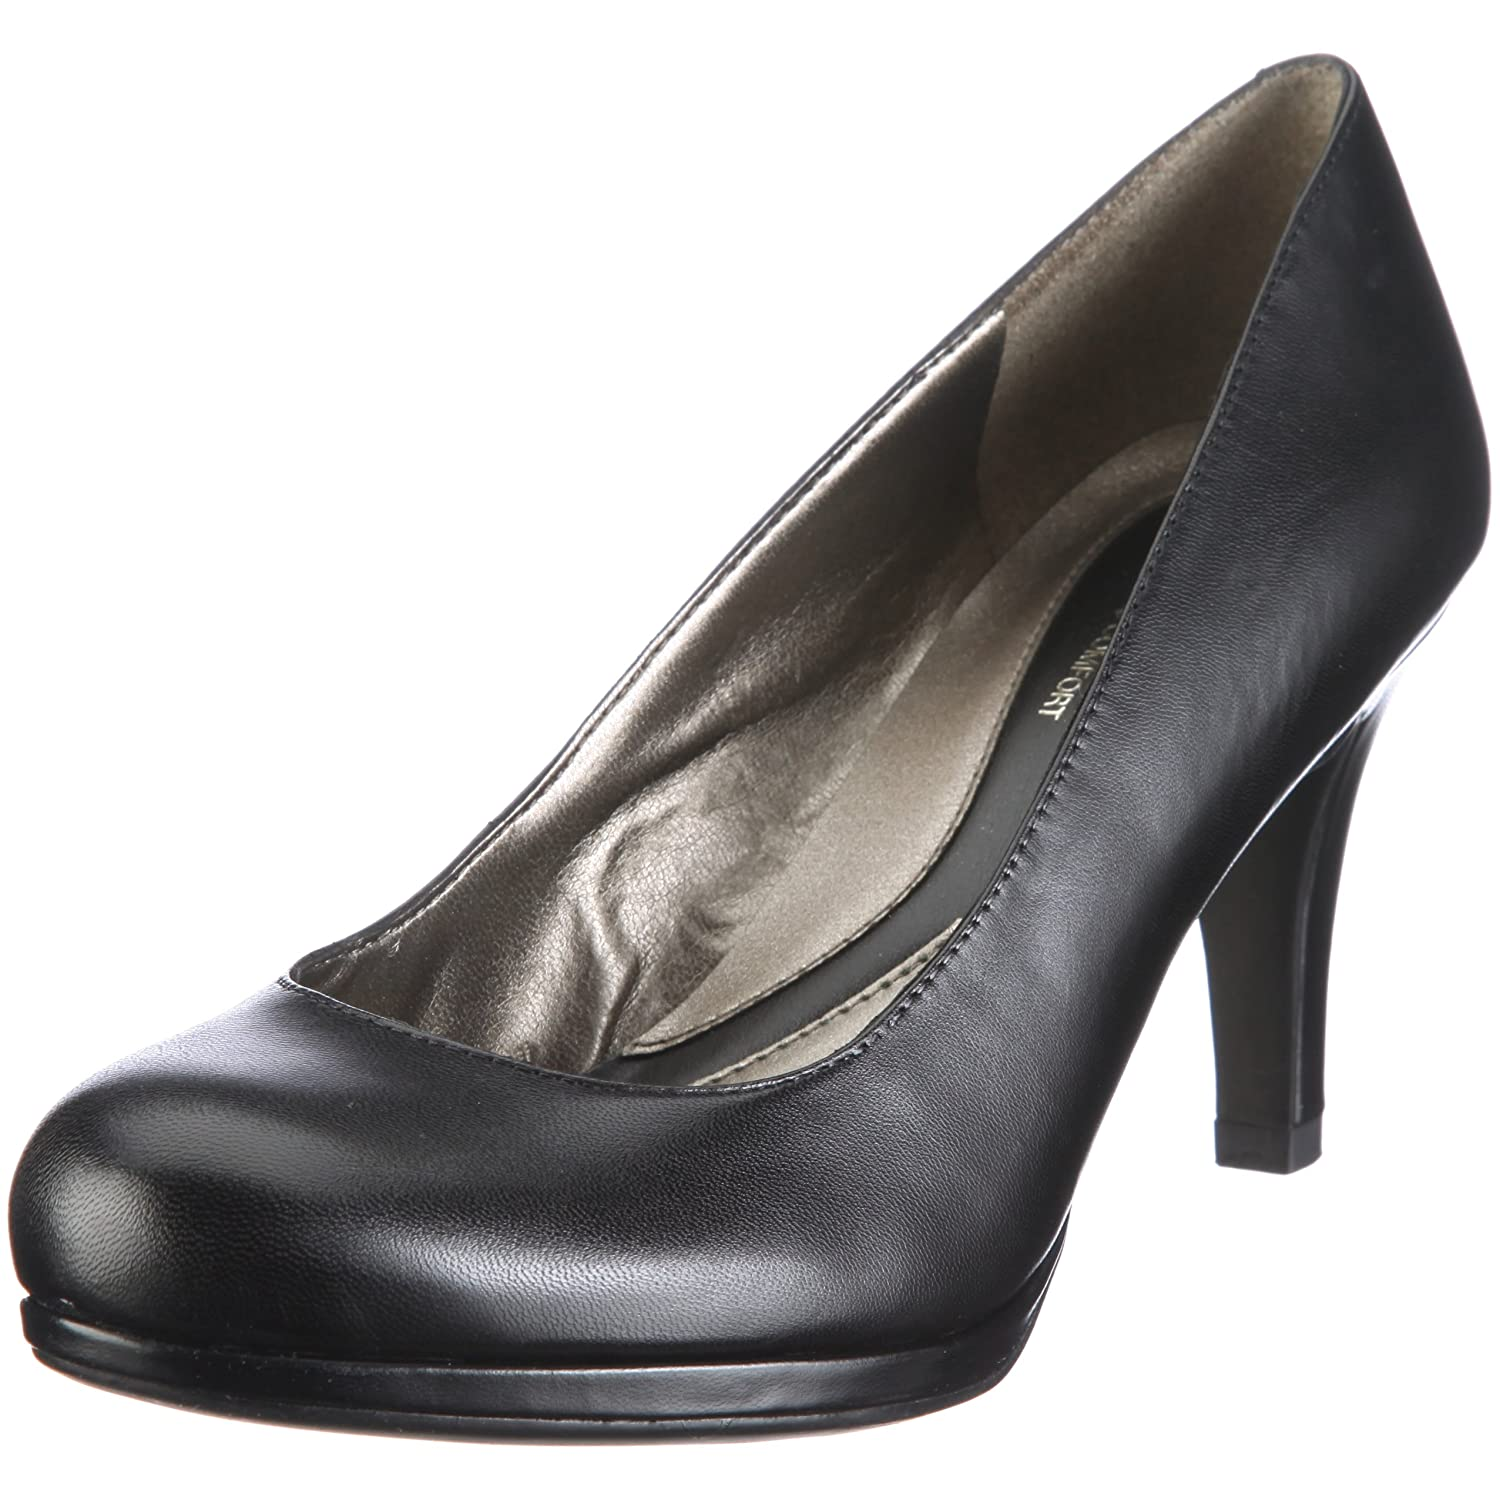 Naturalizer Naturalizer Naturalizer LENNOX 44898001 Damen Pumps Schwarz (schwarz) e8bd50